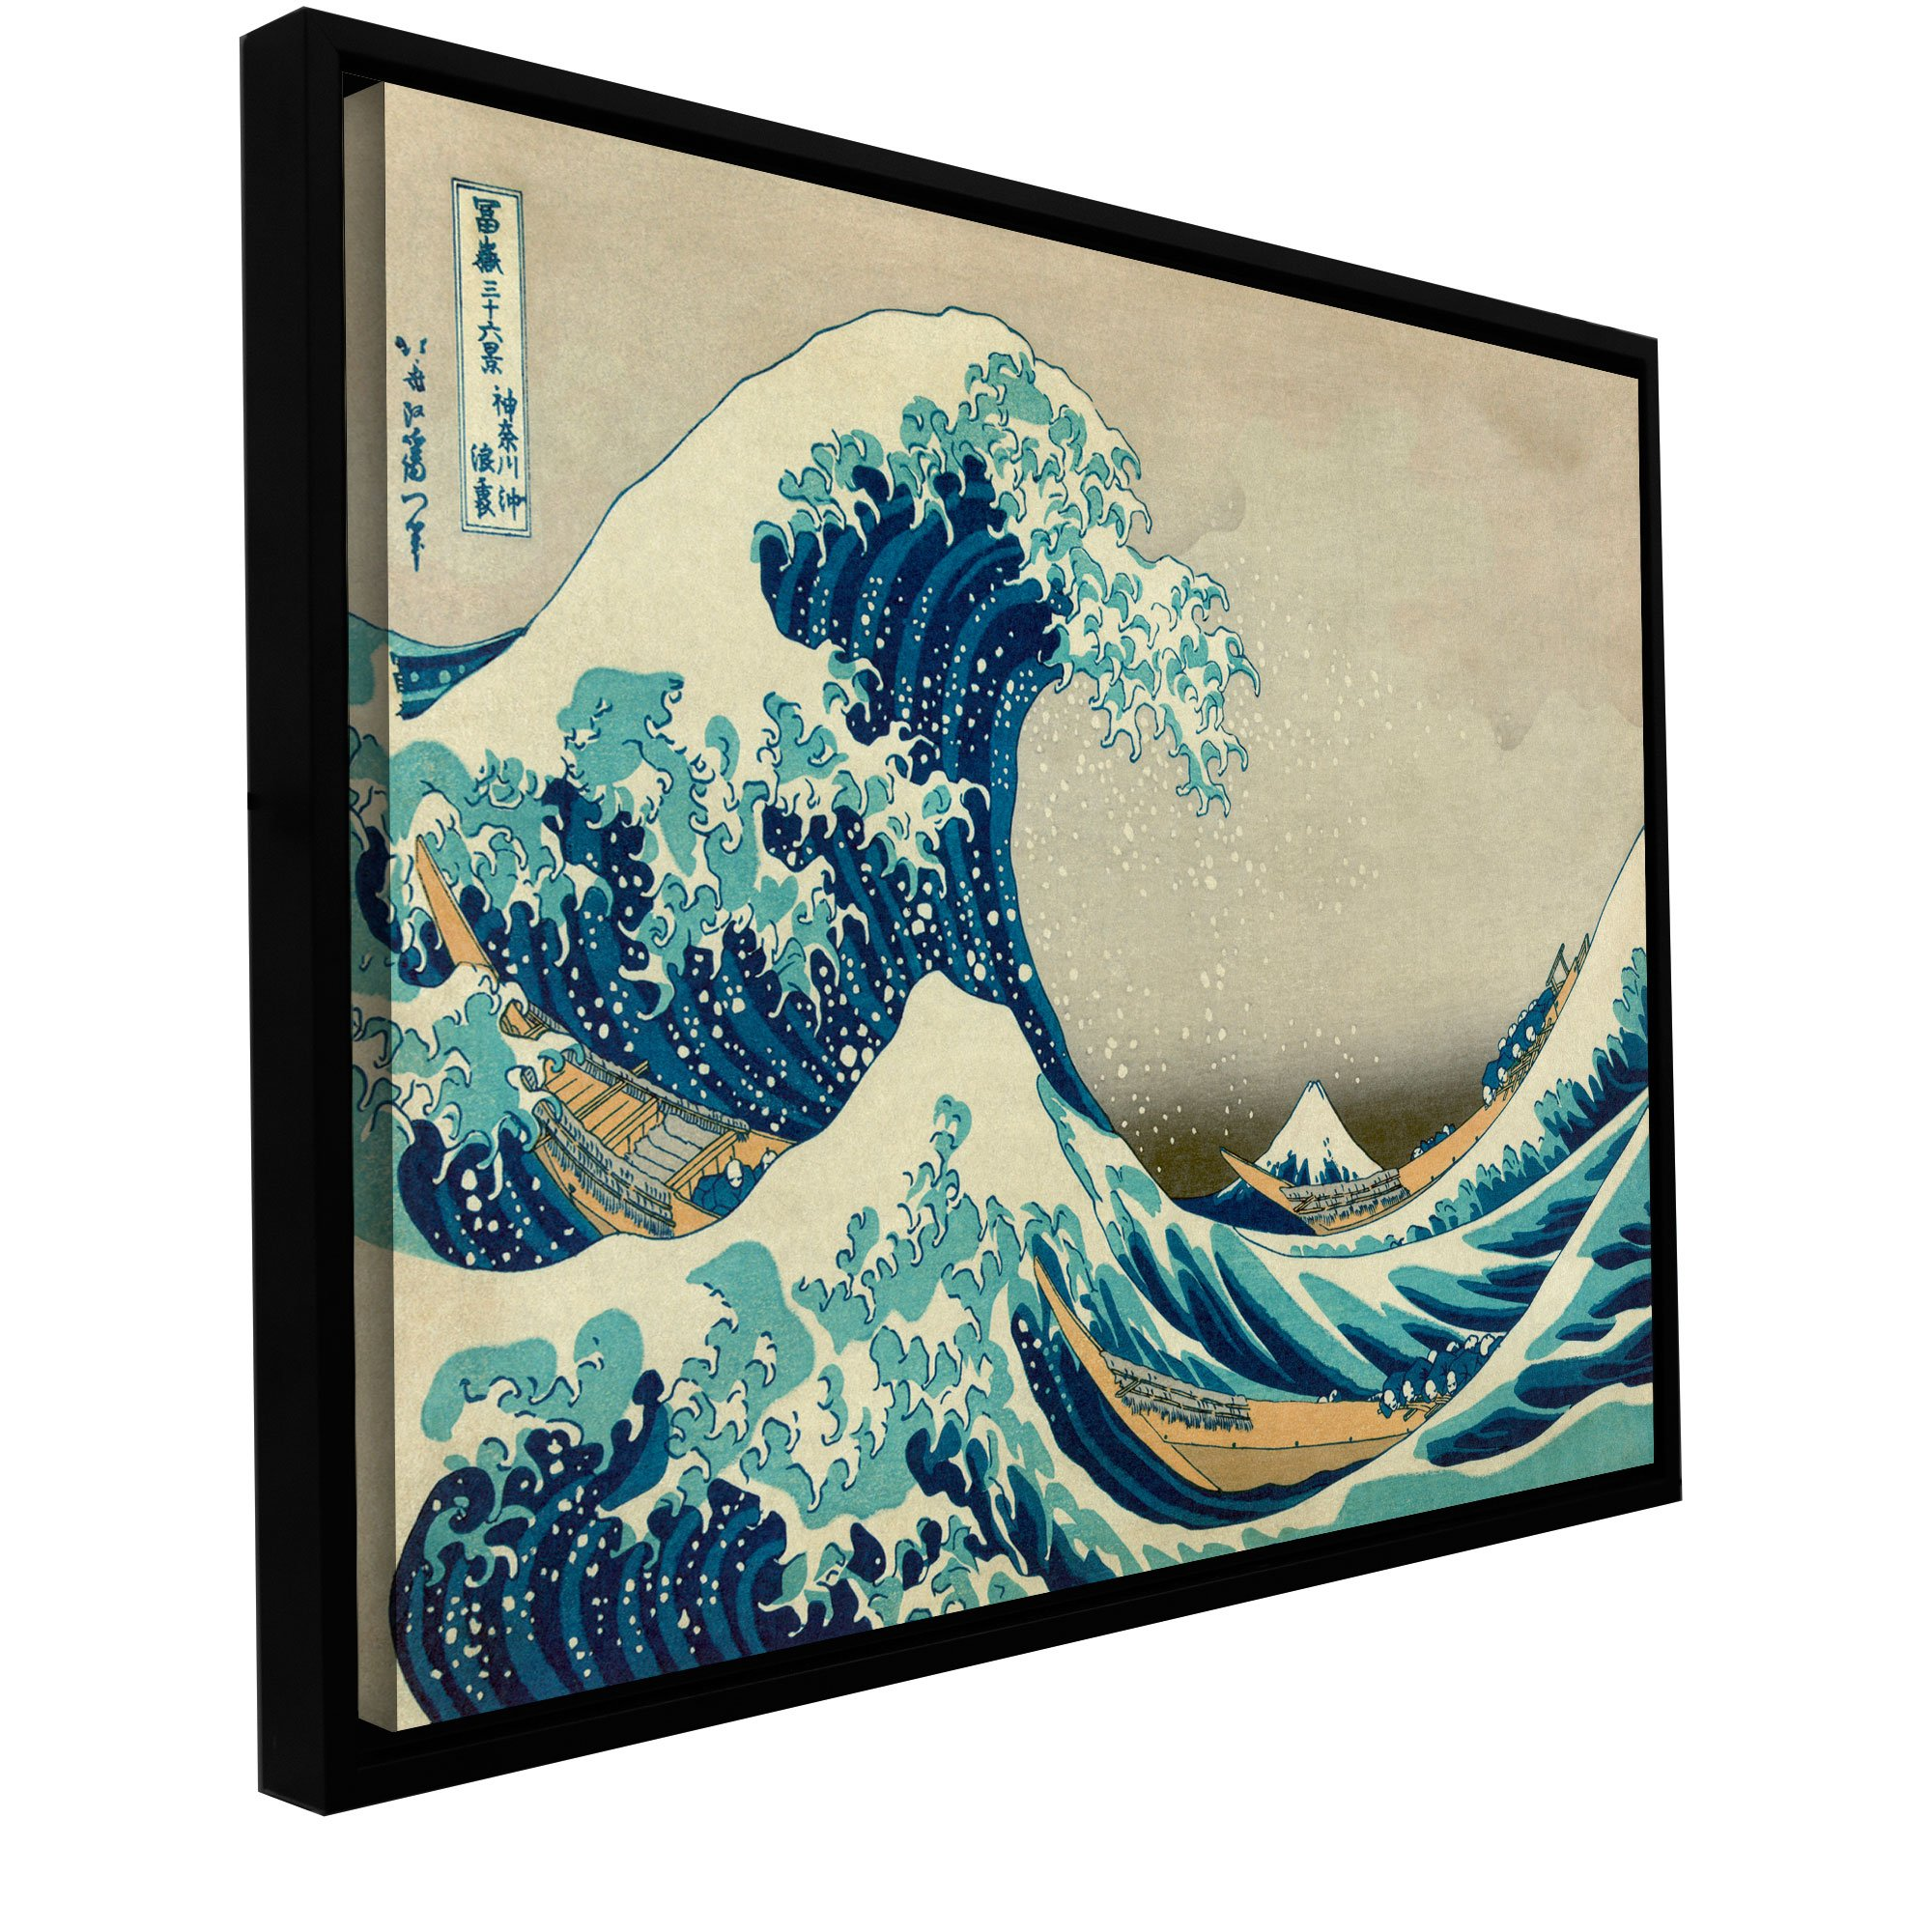 ArtWall Katsushika Hokusai 'The Great Wave Off Kanagawa' Floater framed Gallery Wrapped Canvas Artwork, 36 by 48-Inch by Art Wall